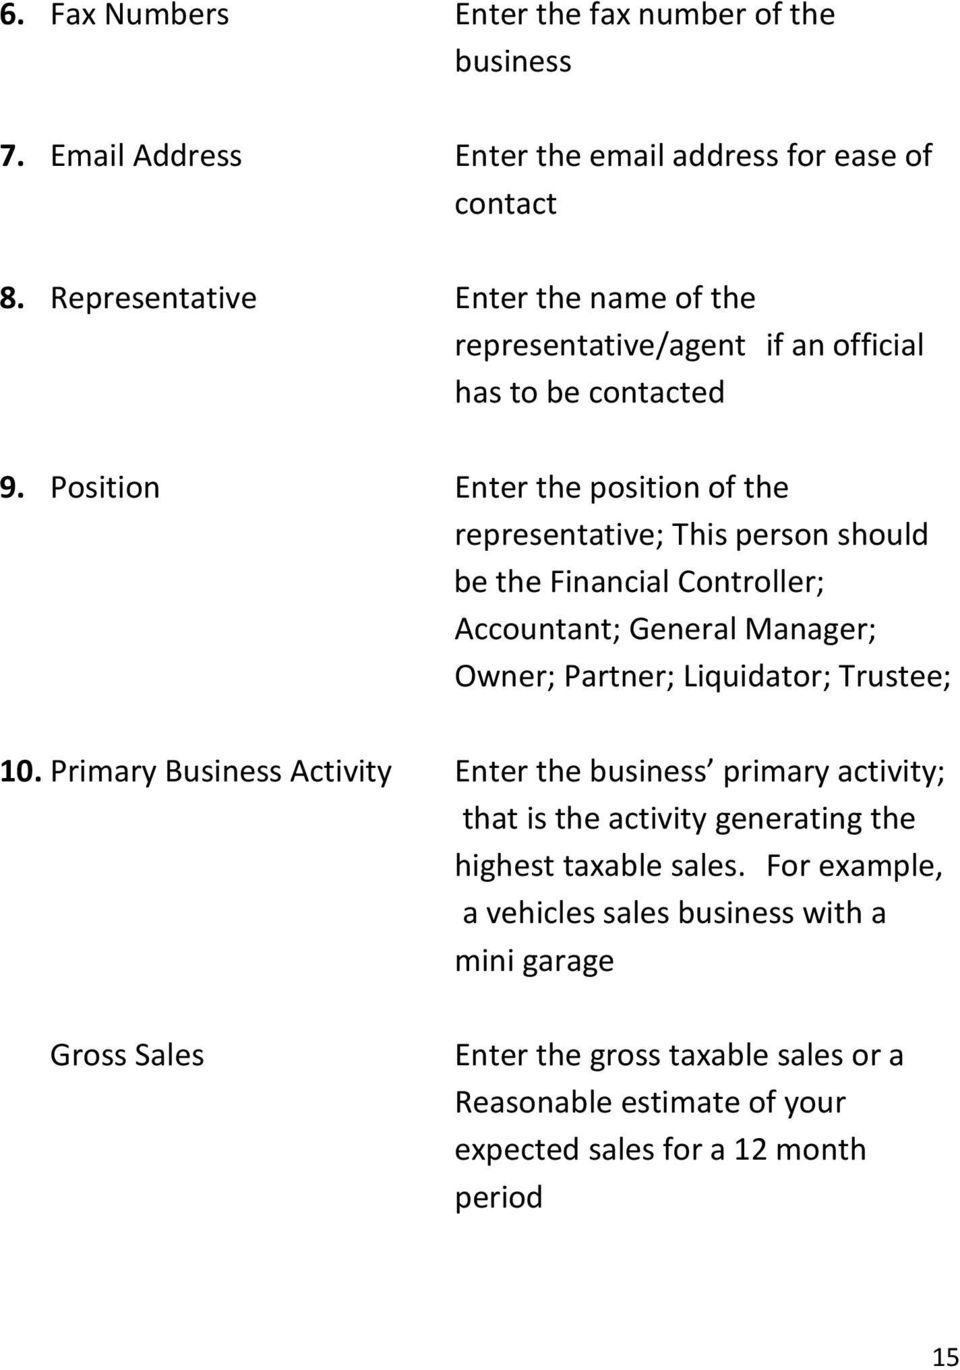 Position Enter the position of the representative; This person should be the Financial Controller; Accountant; General Manager; Owner; Partner; Liquidator; Trustee;